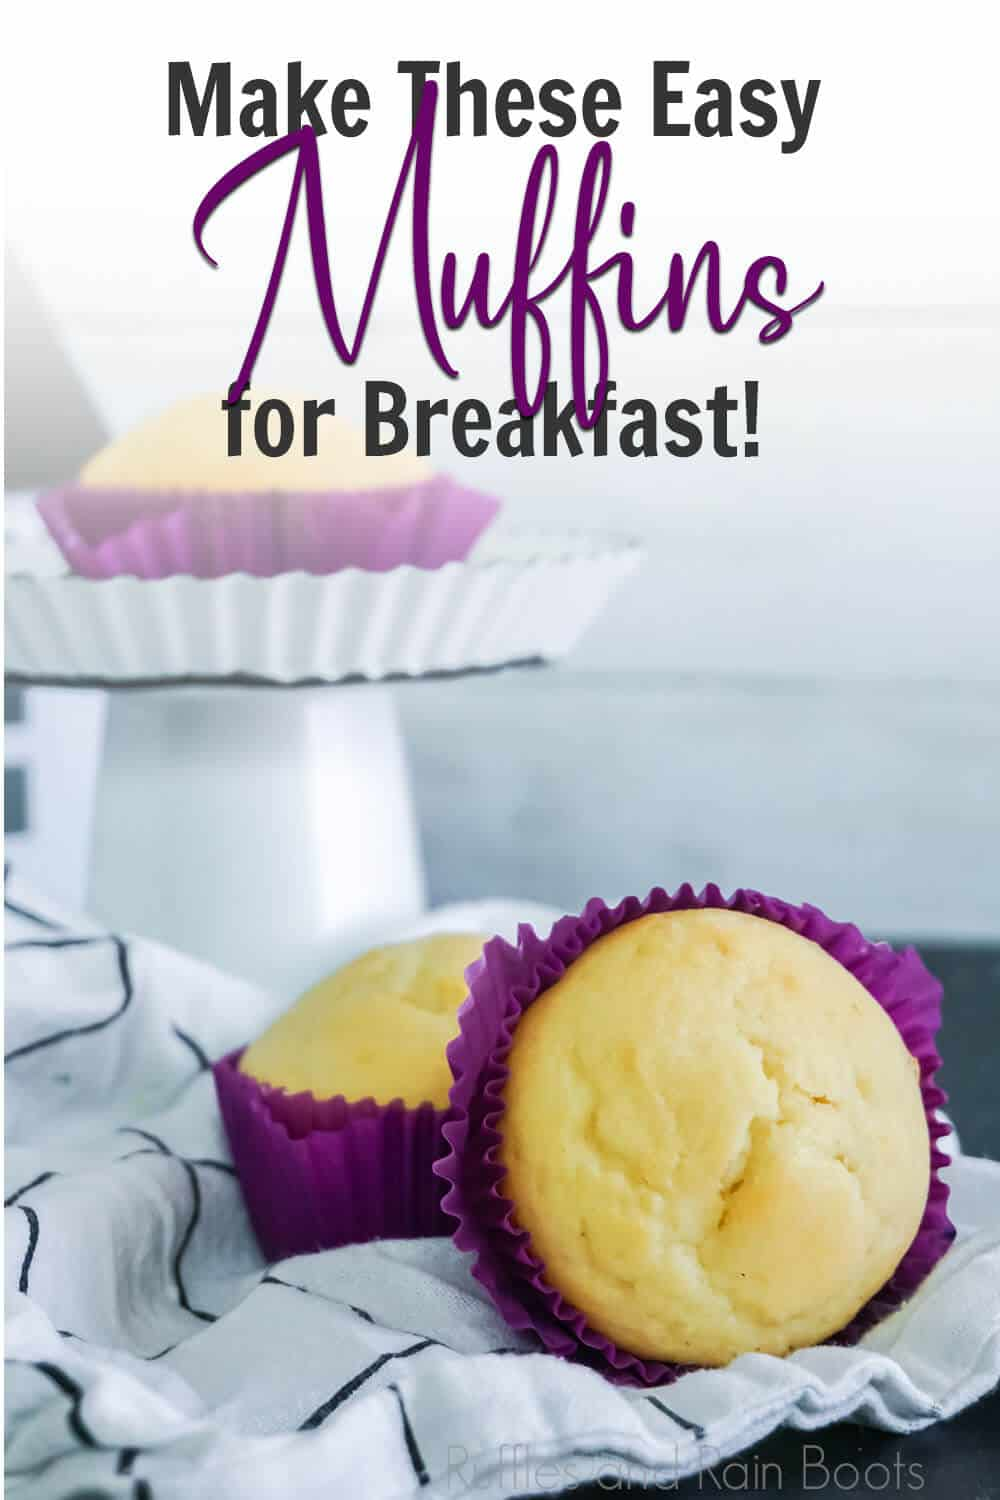 easy recipe for breakfast muffins with text which reads make these easy muffins for breakfast!